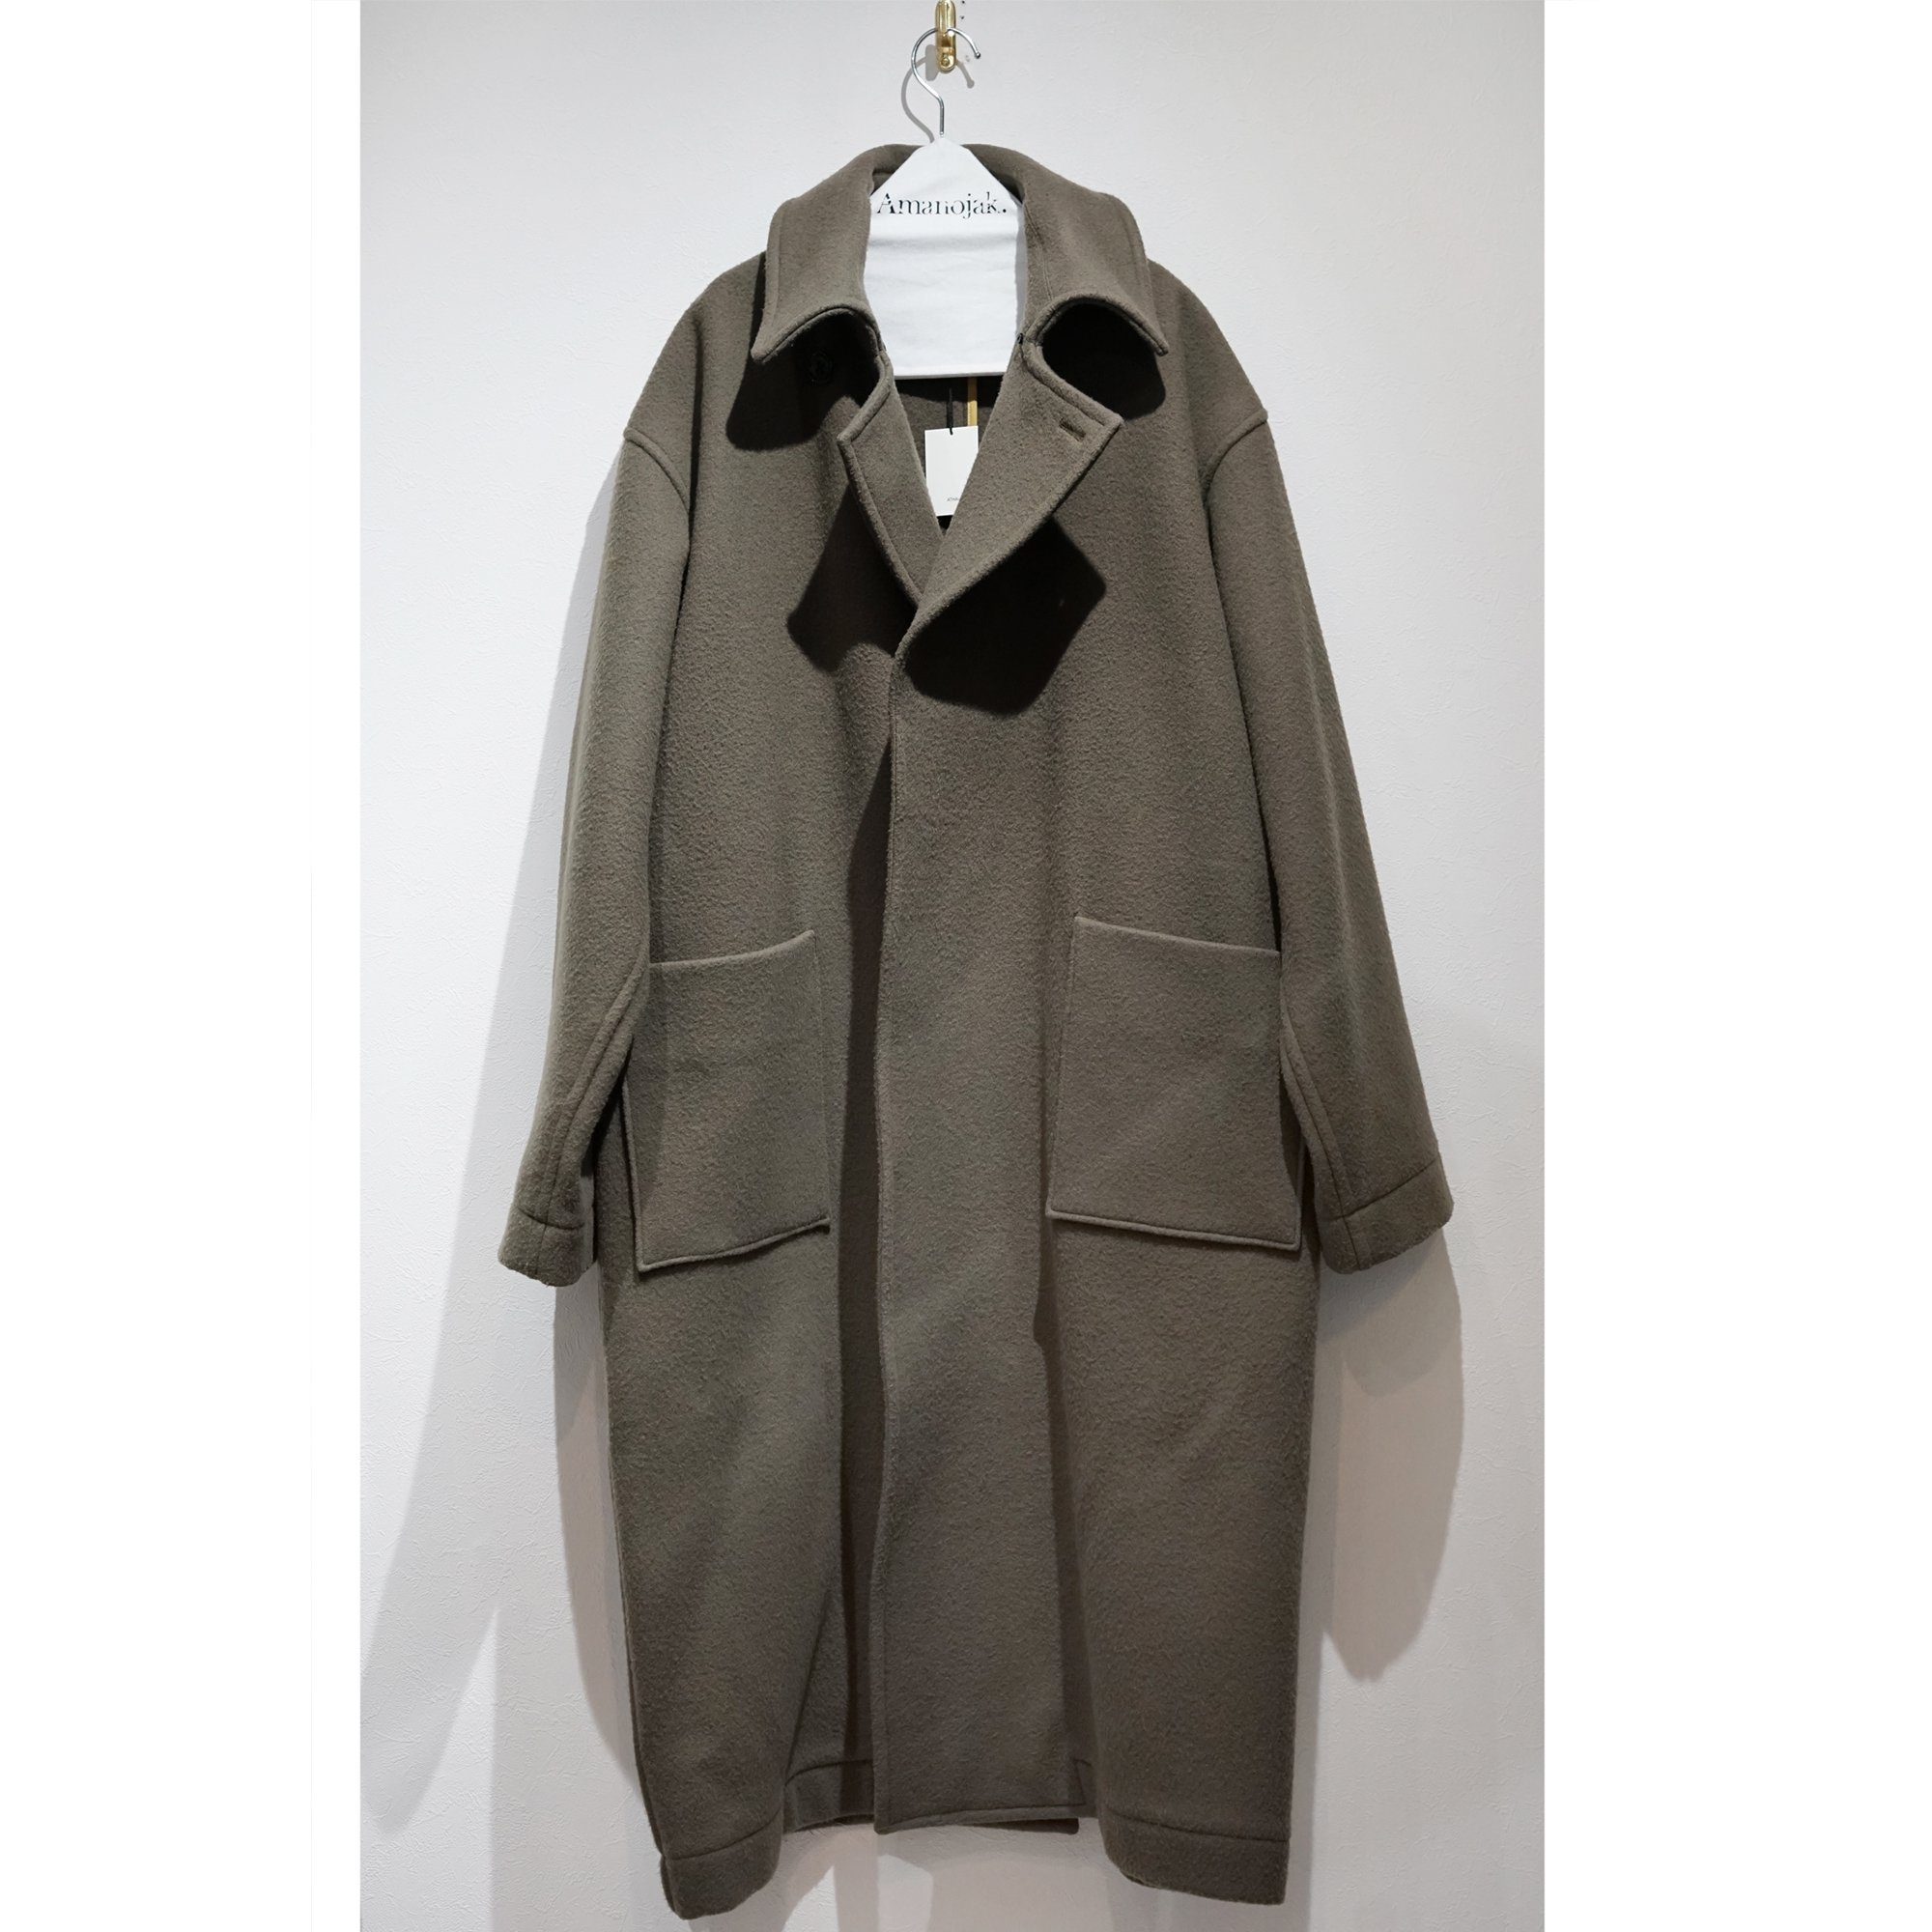 【3/24まで受注受付】ATHA-DOUBLE MELTON MAXI COAT KHAKI